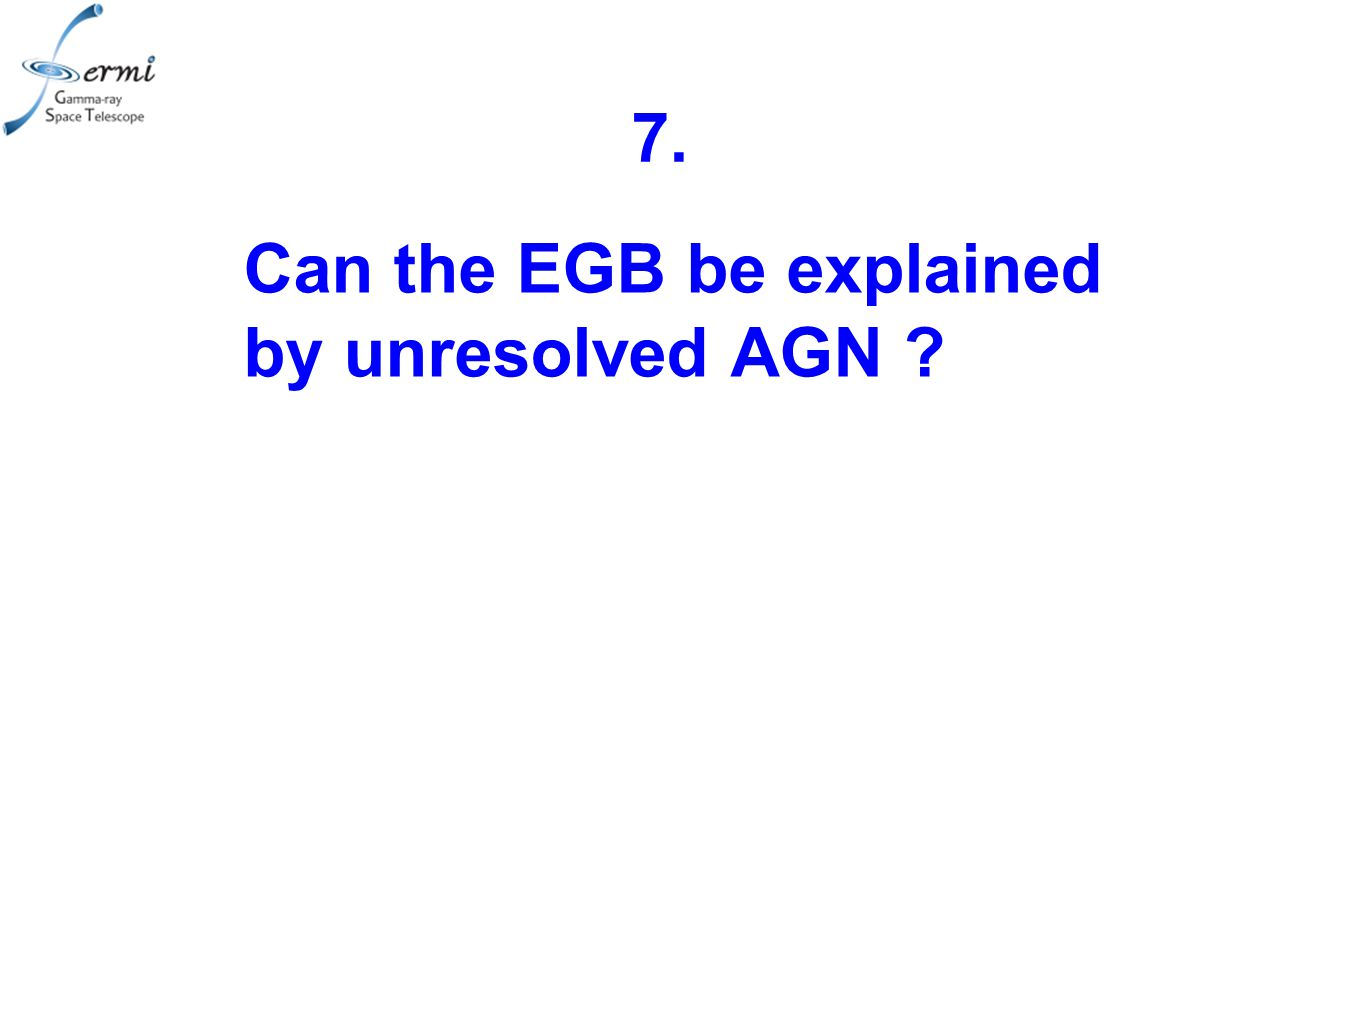 Can the EGB be explained by unresolved AGN 7.